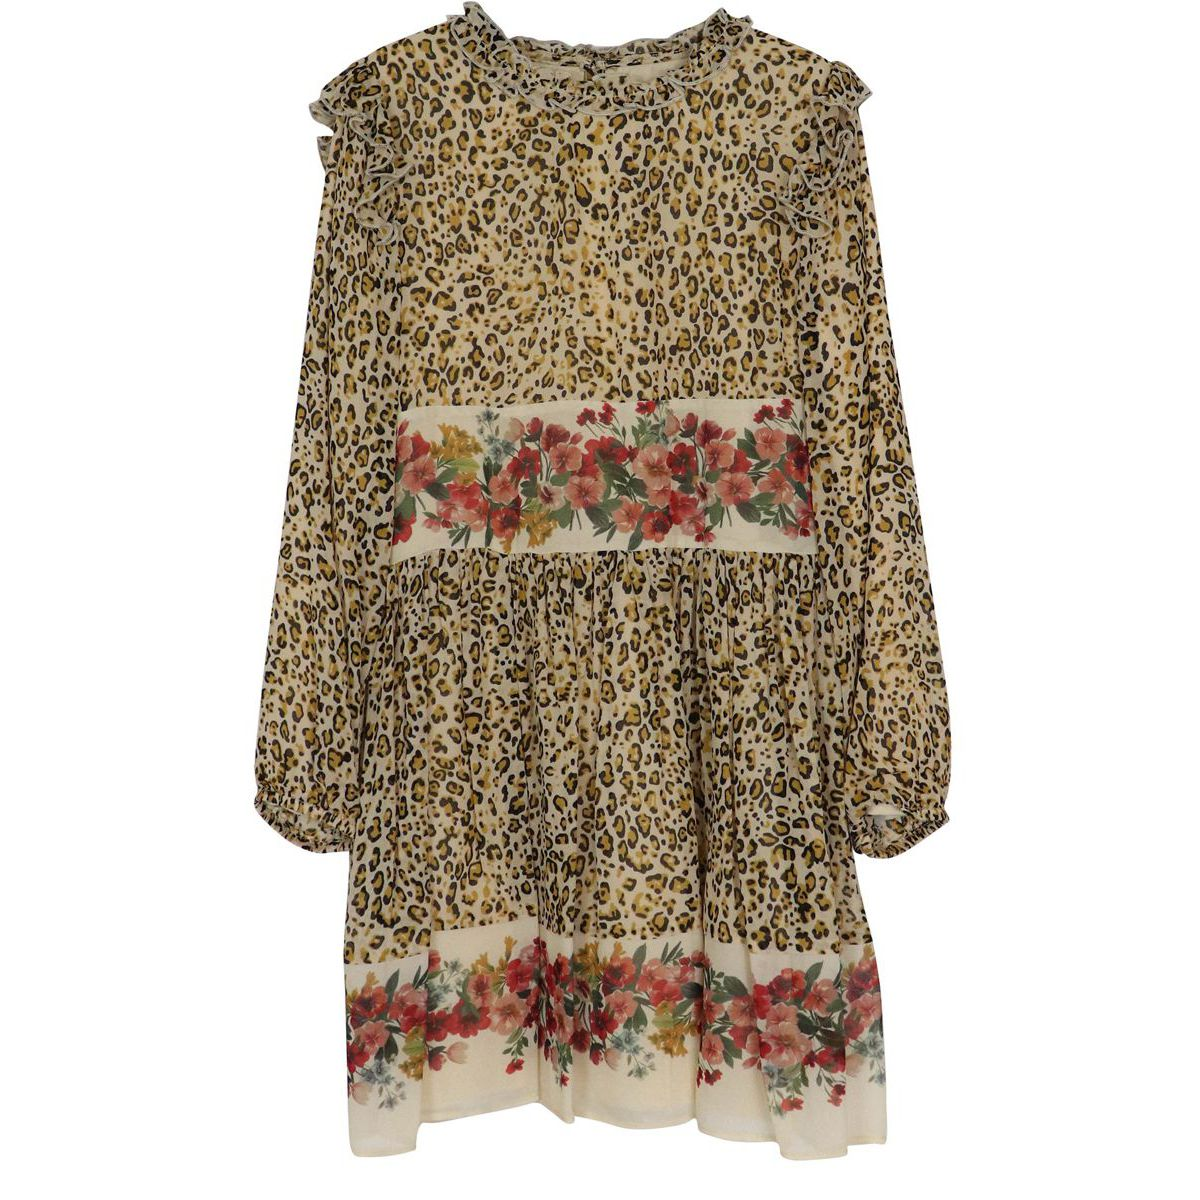 Georgette dress with animal print and flower bands Animal print Twin-Set